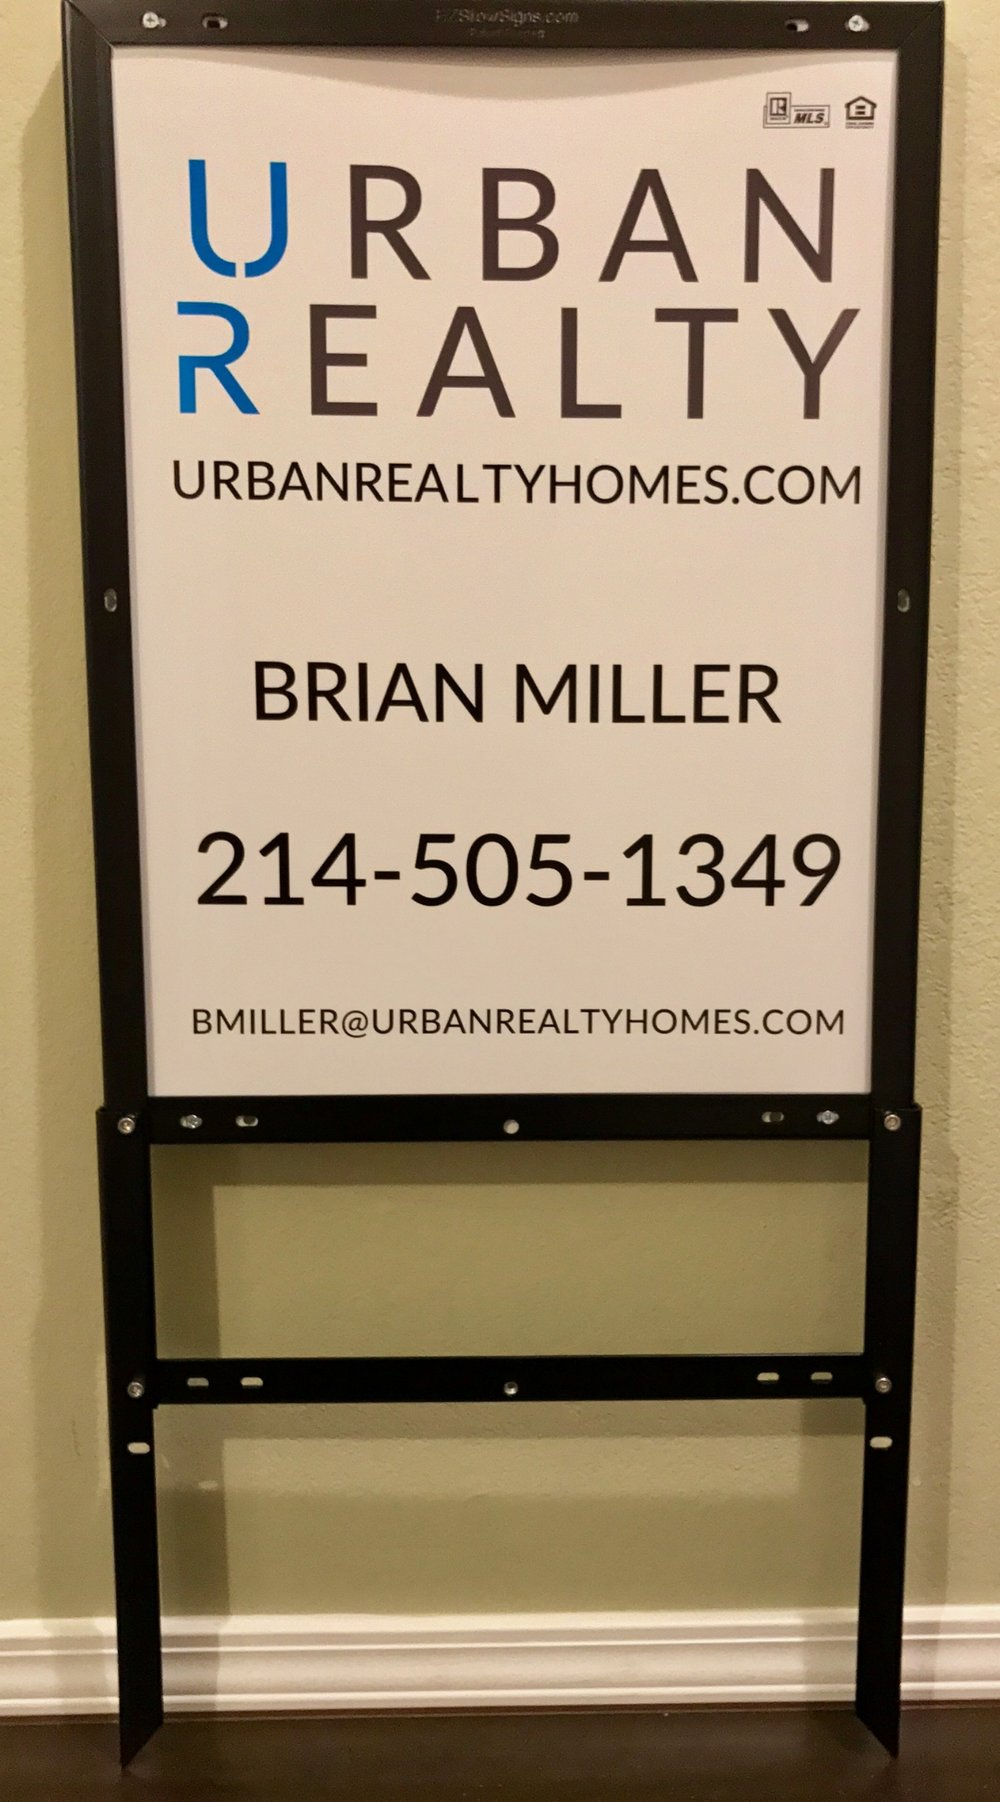 Urban Realty 24%22 x 18%22 Panel & EZ Frame.jpeg